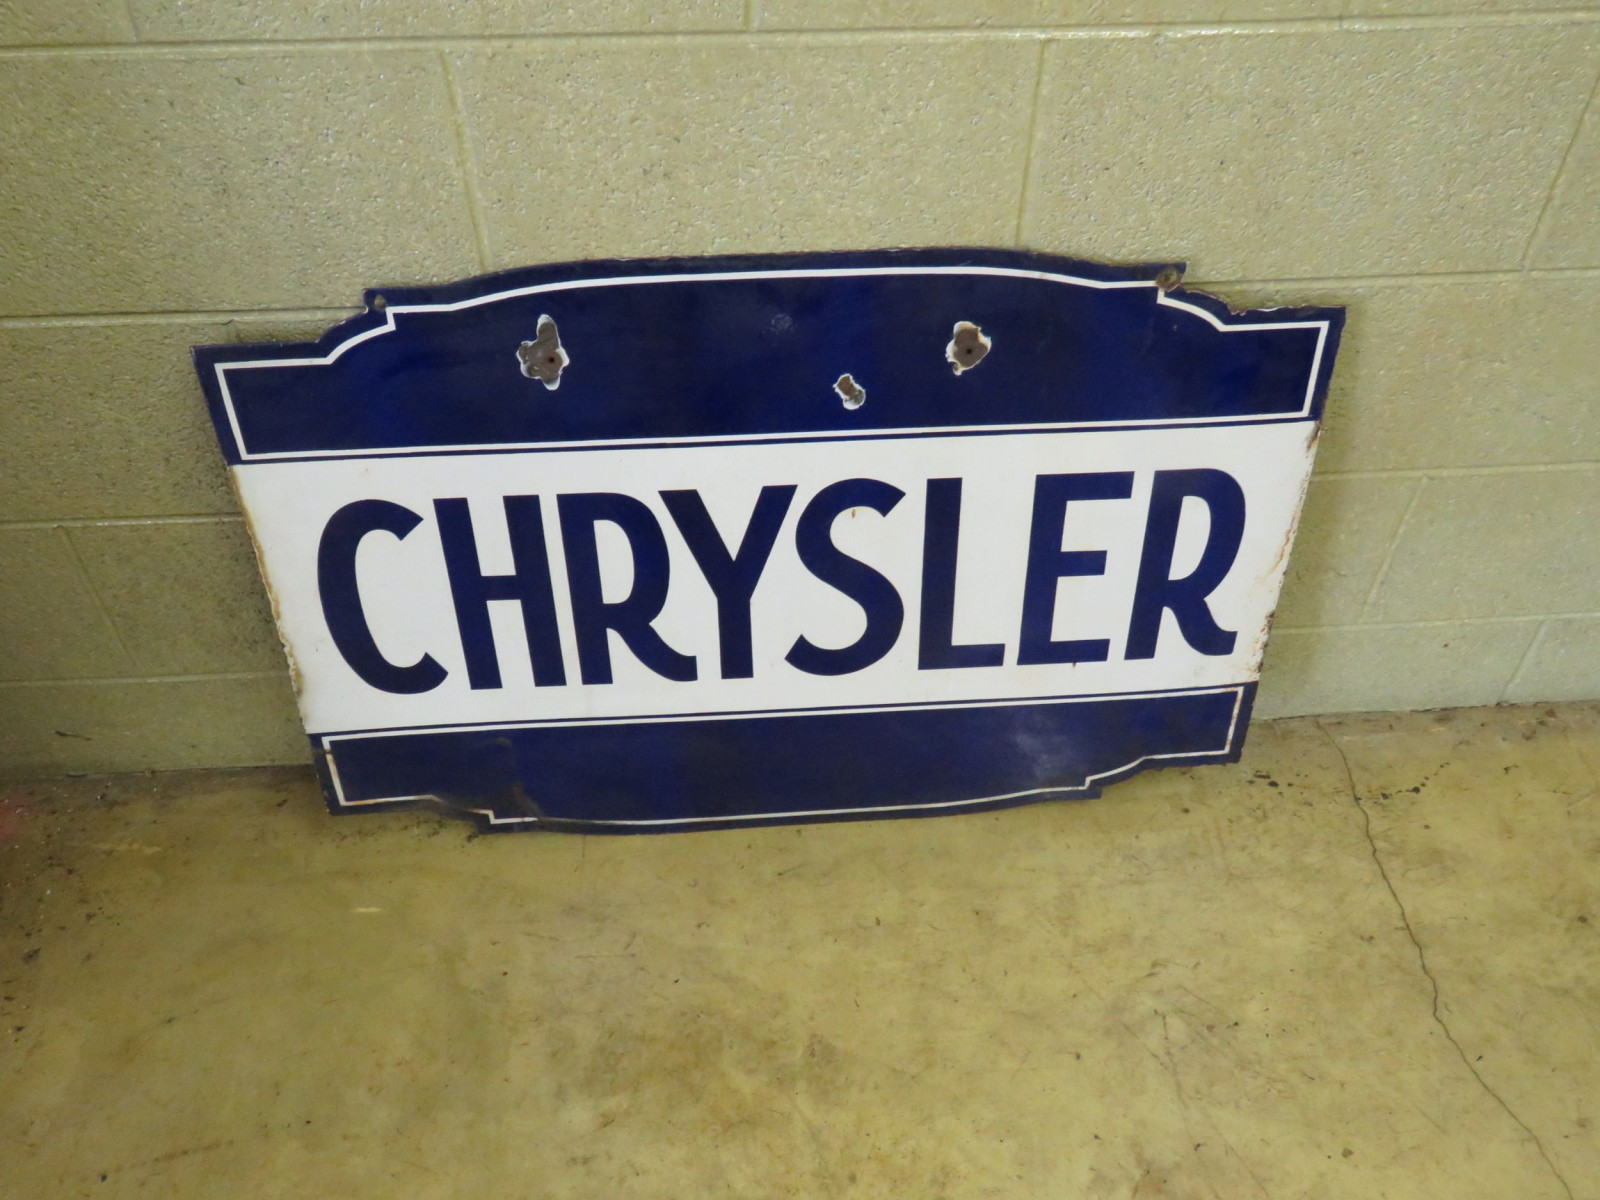 Chrysler Porcelain Sign - Image 1